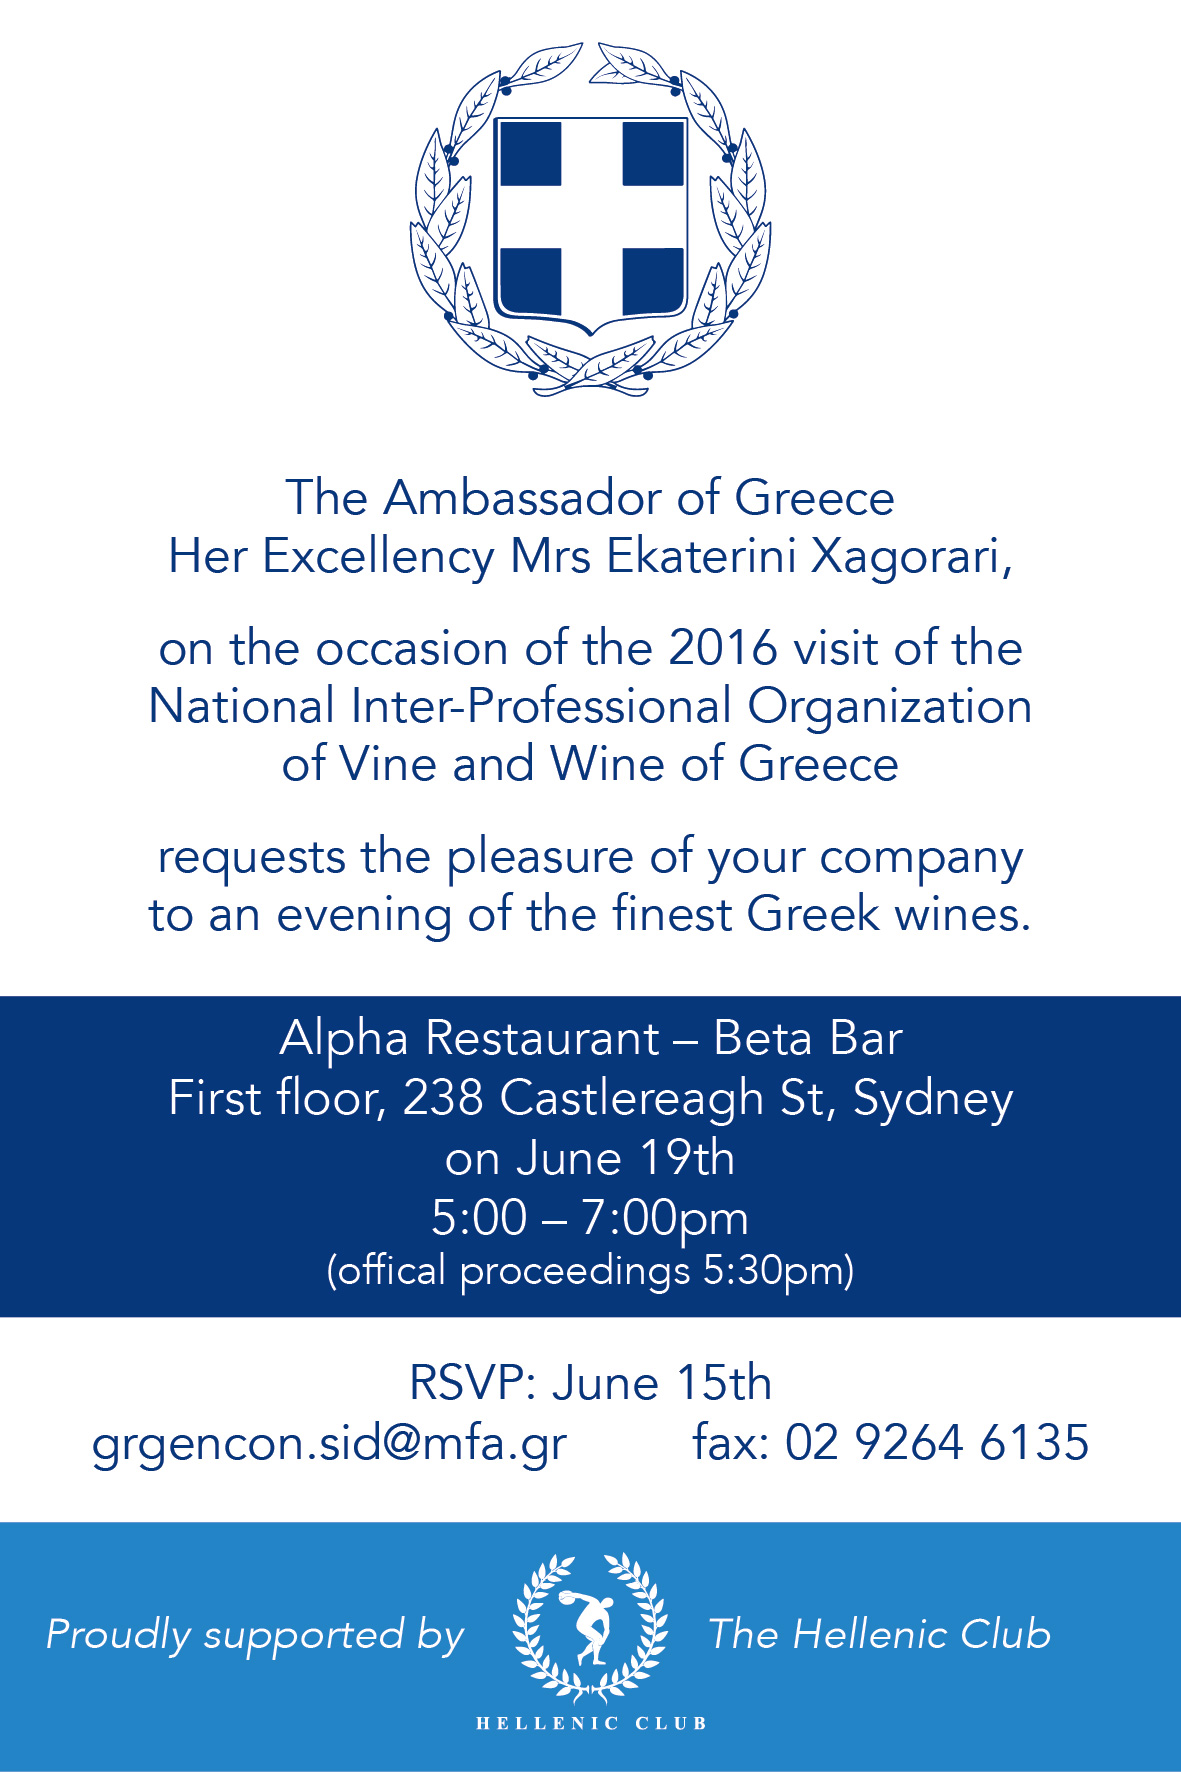 Embassy of Greece and Hellenic Club function